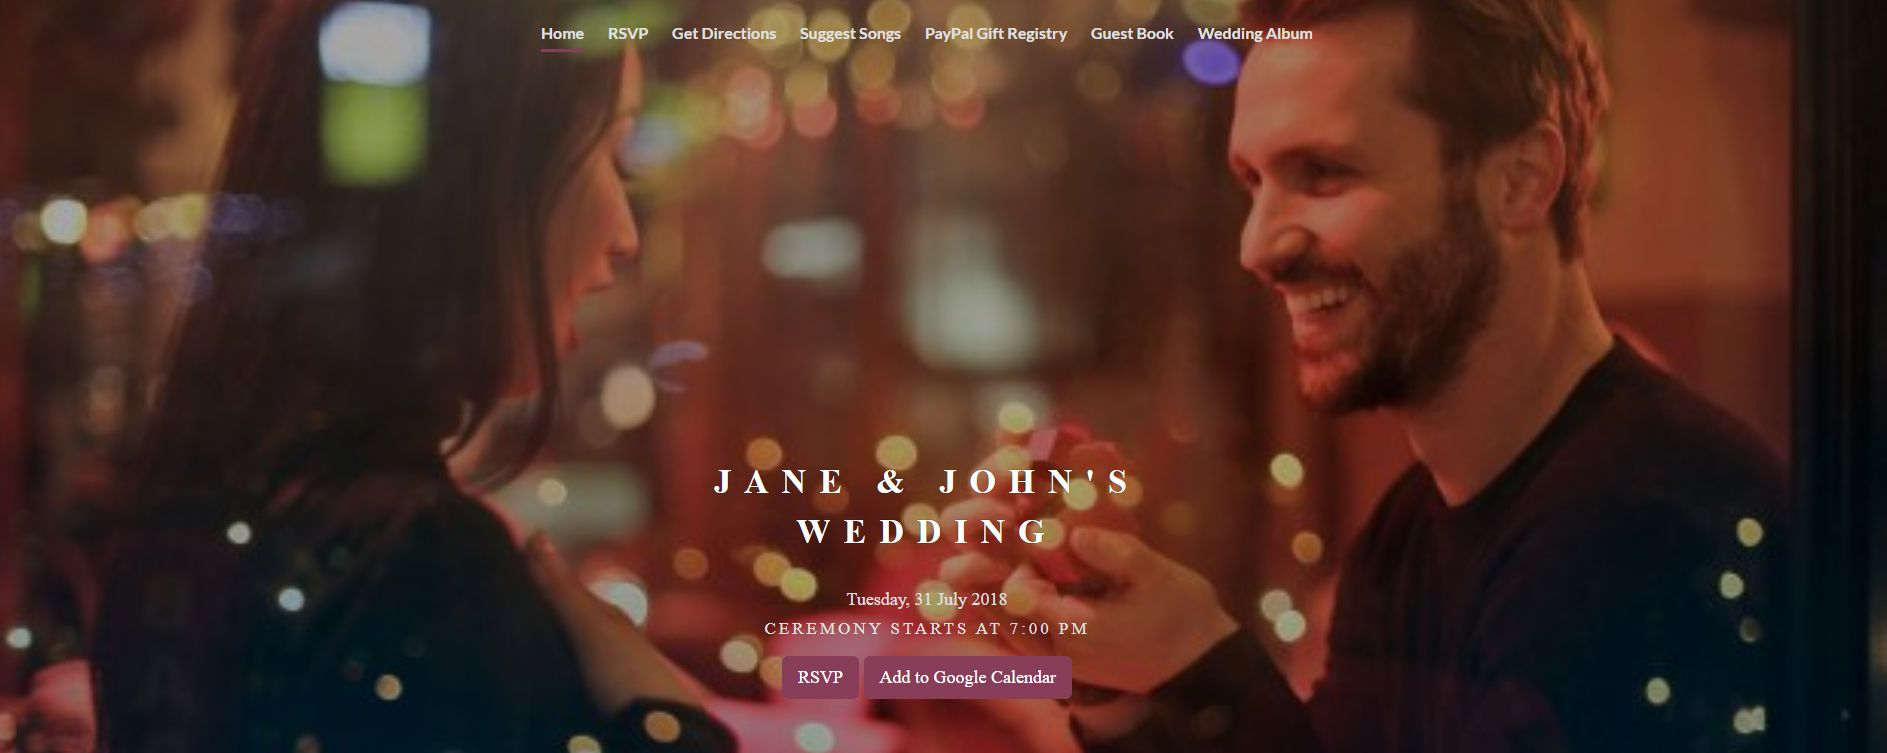 An online wedding invite with a man proposing